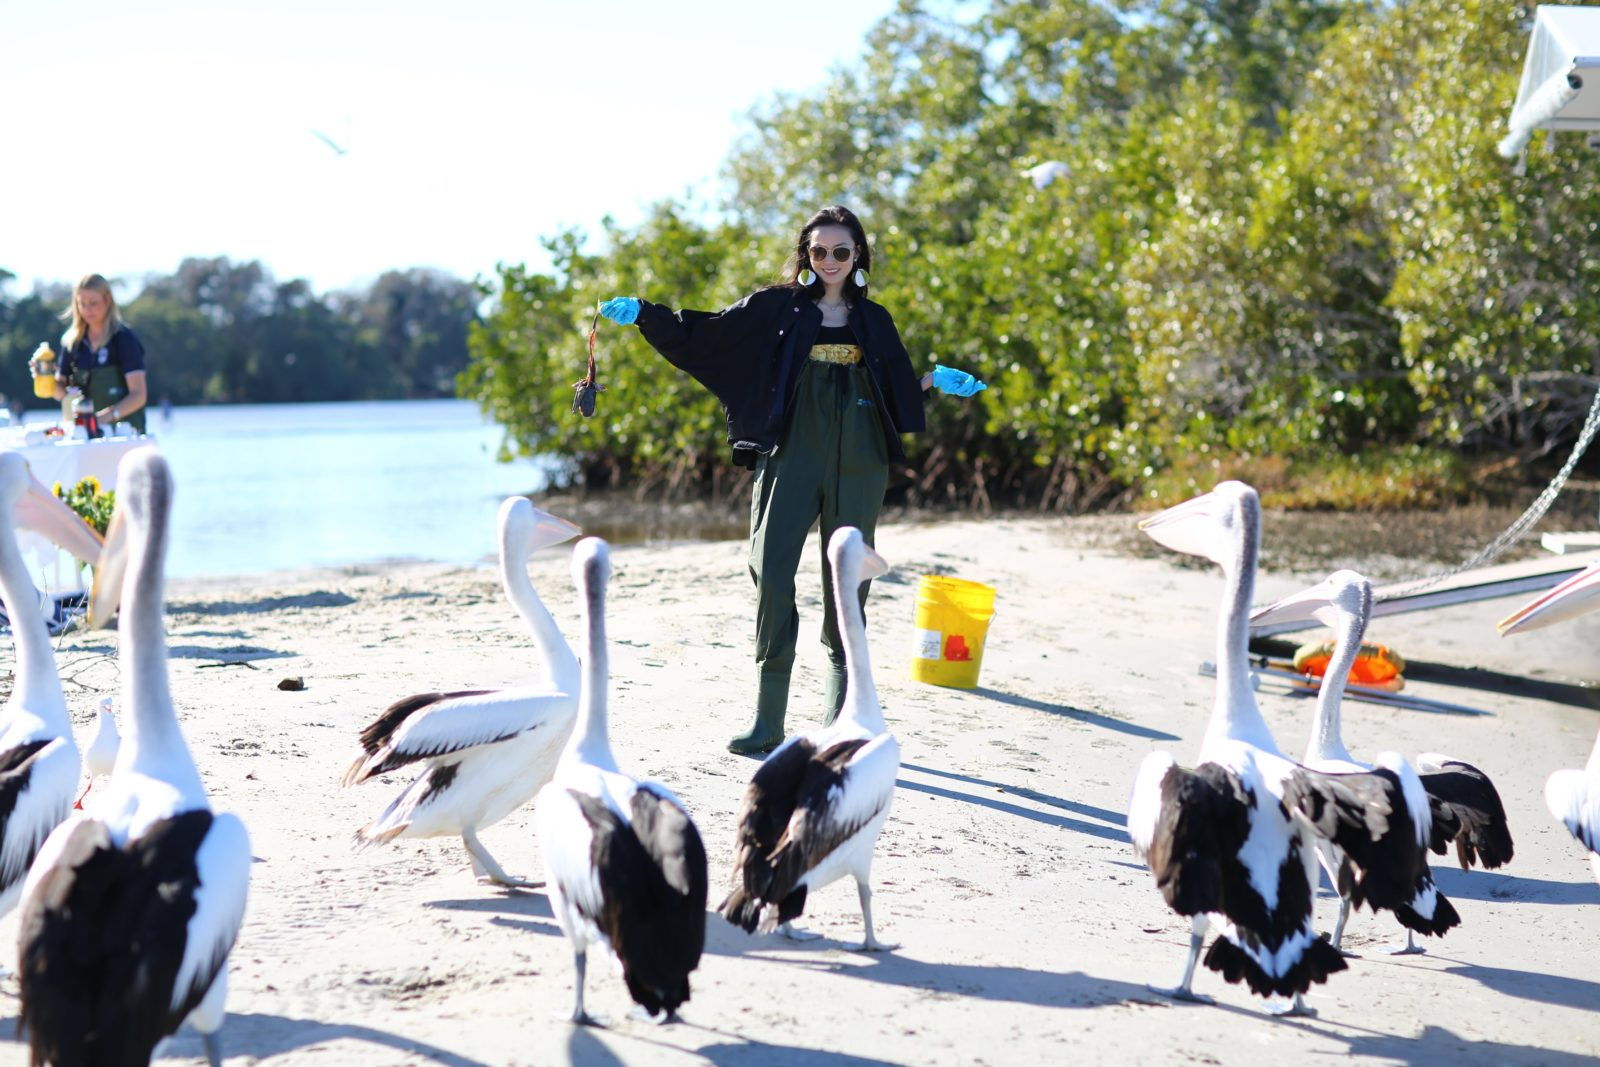 Victoria Secret model Xiowen the pelican whisperer